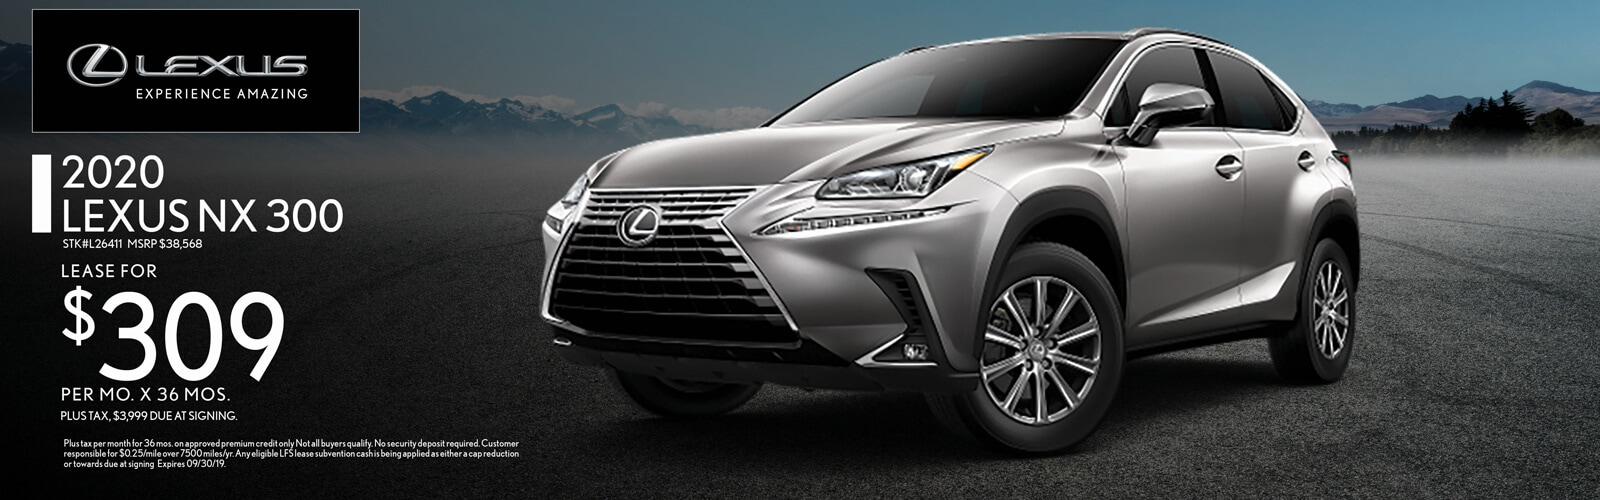 Lease a 2020 Lexus NX 300 for $309/mo. for 36 mos.